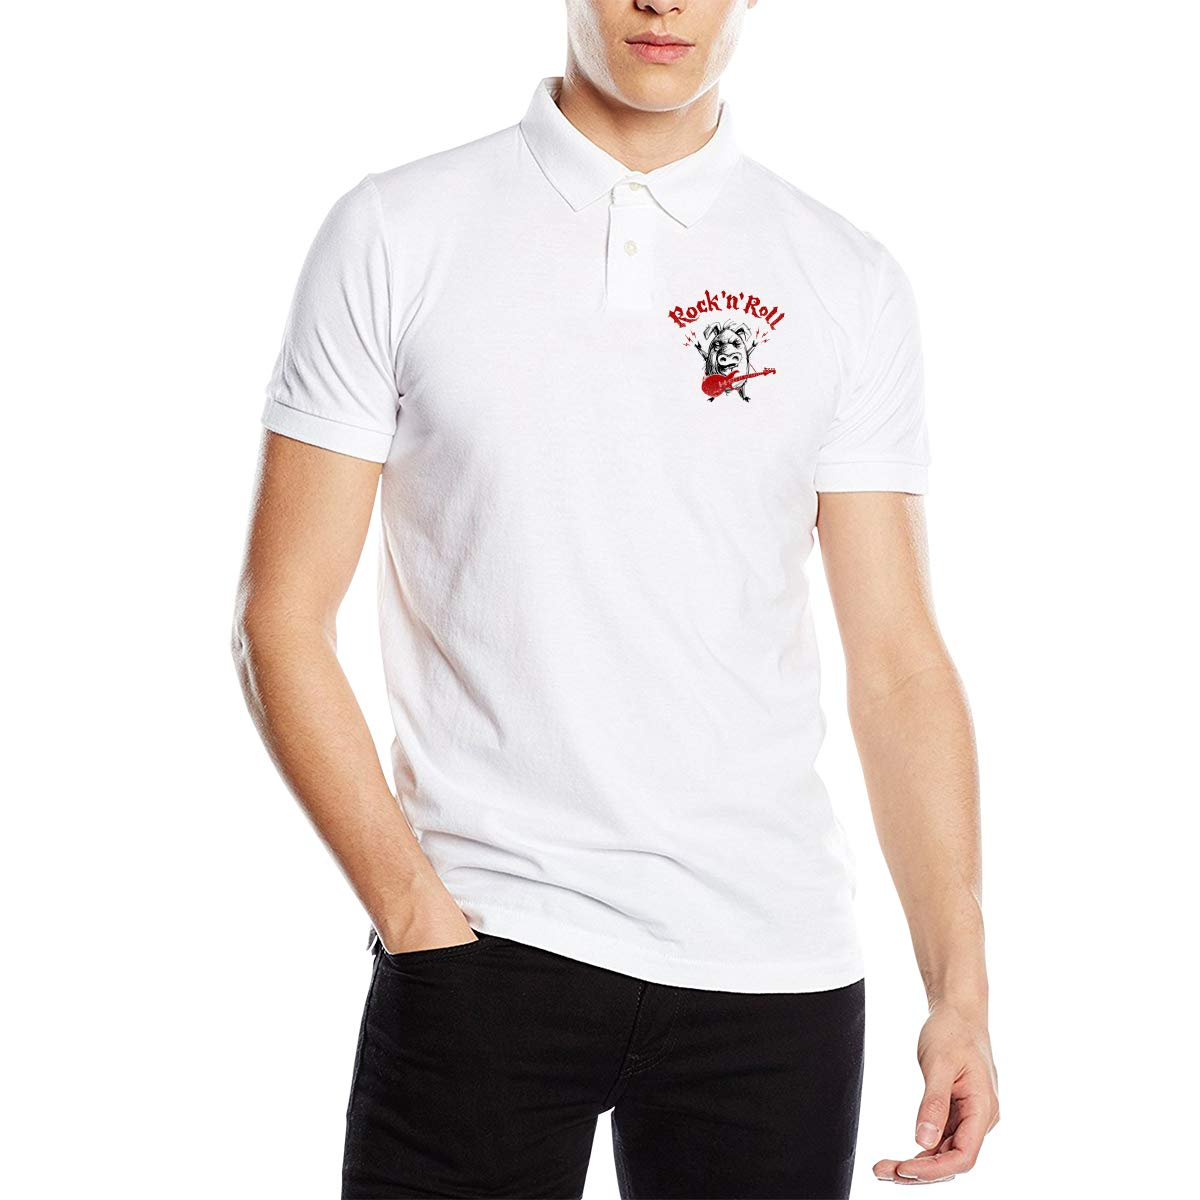 SHENGN Mens Design Sweaty Rock and Roll Lettering with Cartoon Pig Short Sleeve Fashion Polo T Shirt White